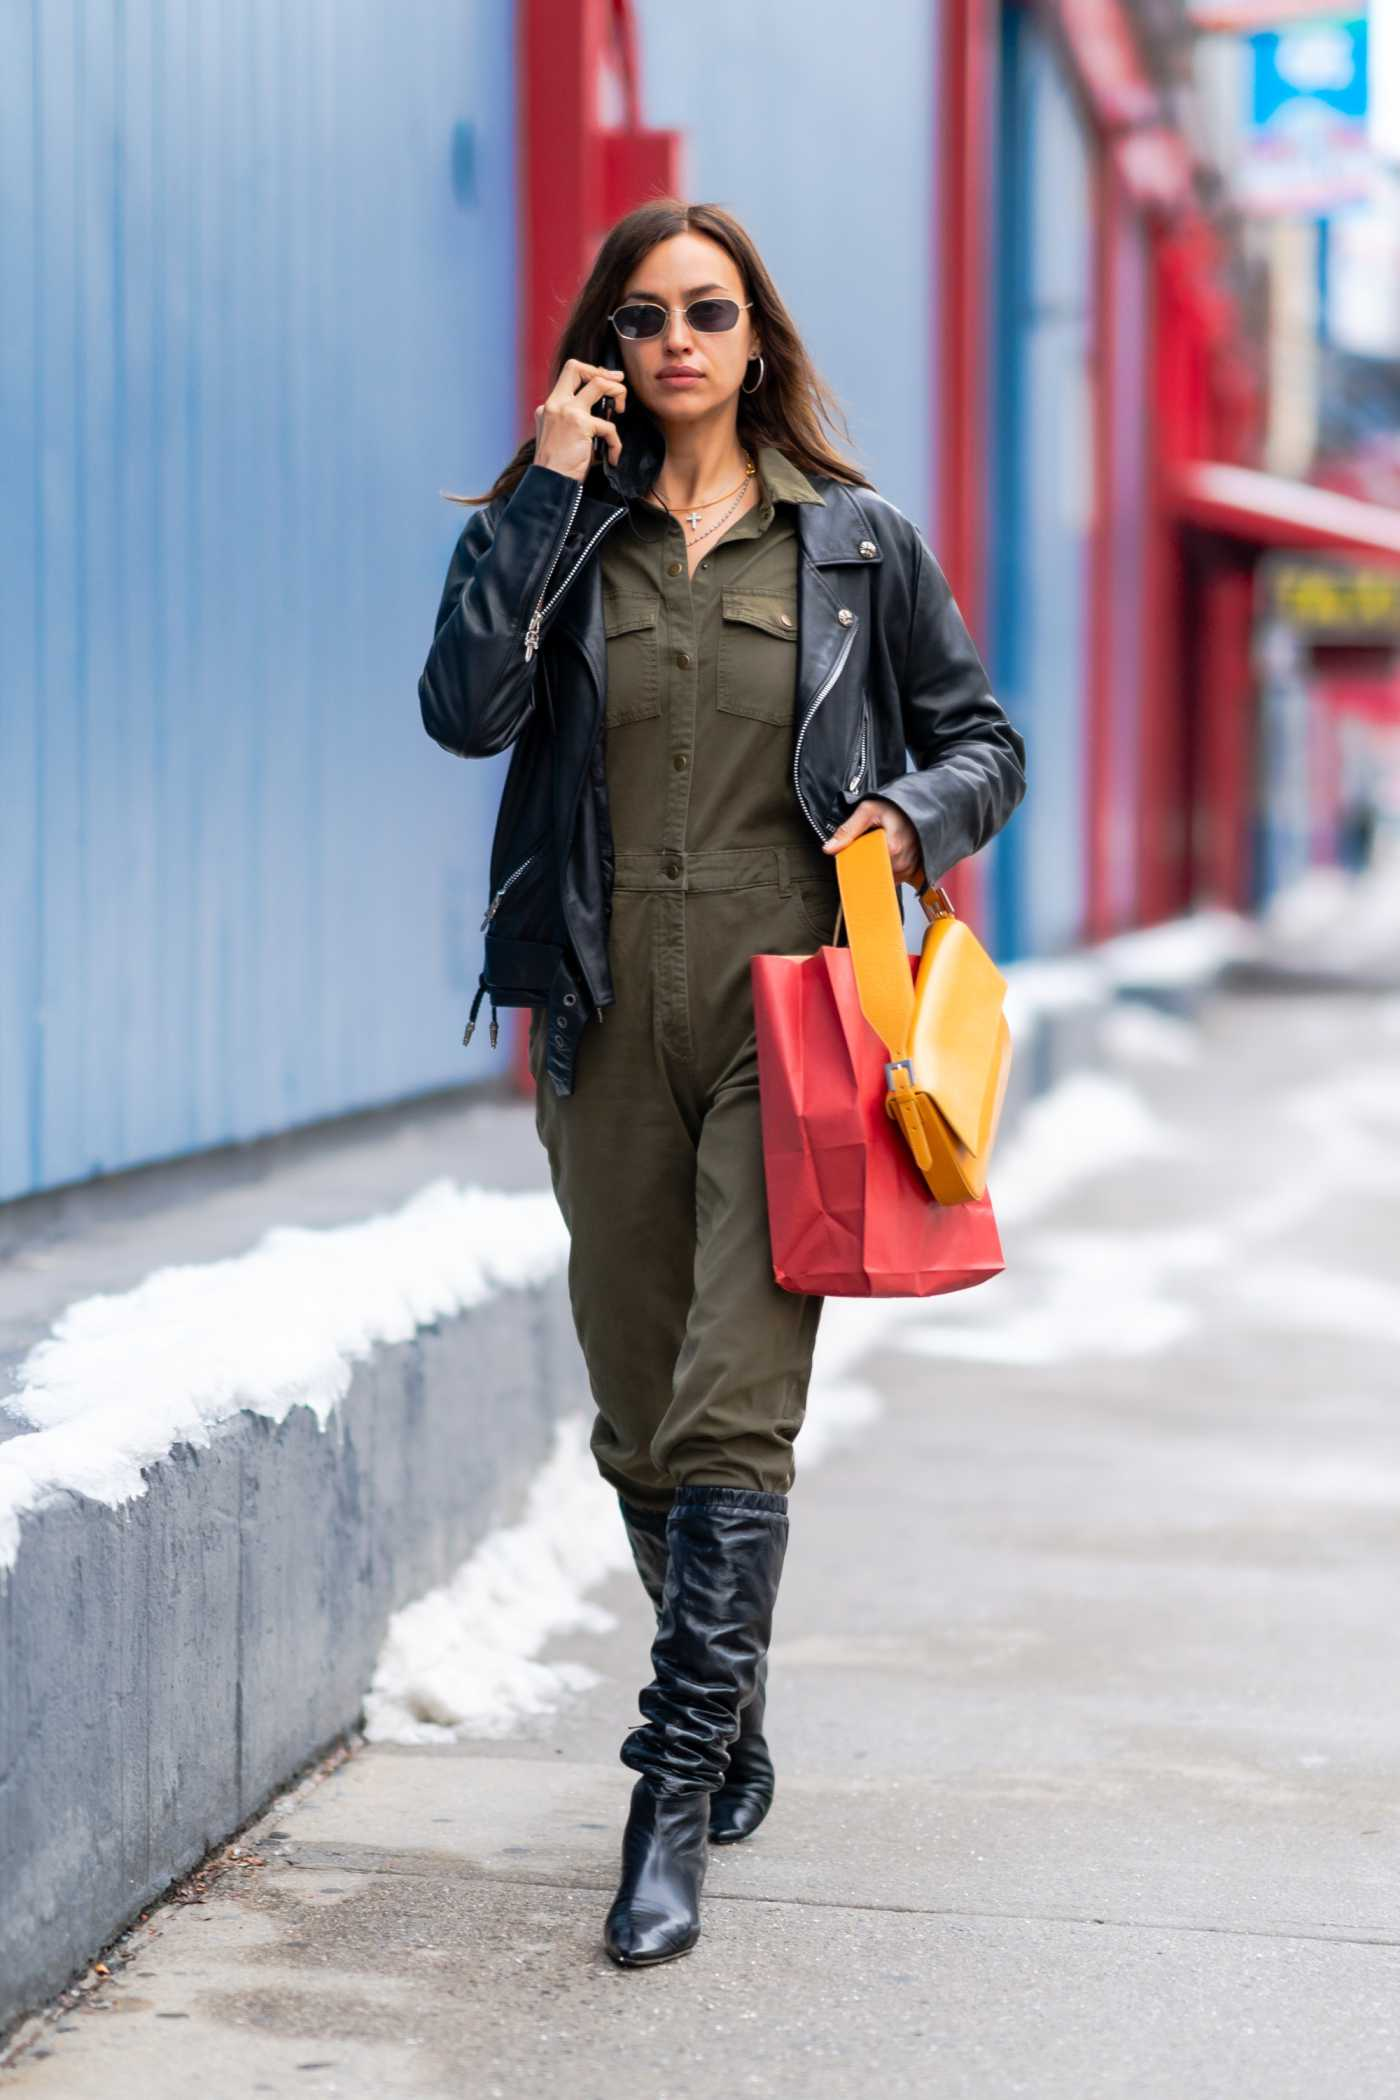 Irina Shayk in a Black Leather Jacket Was Seen Out in New York 12/20/2020